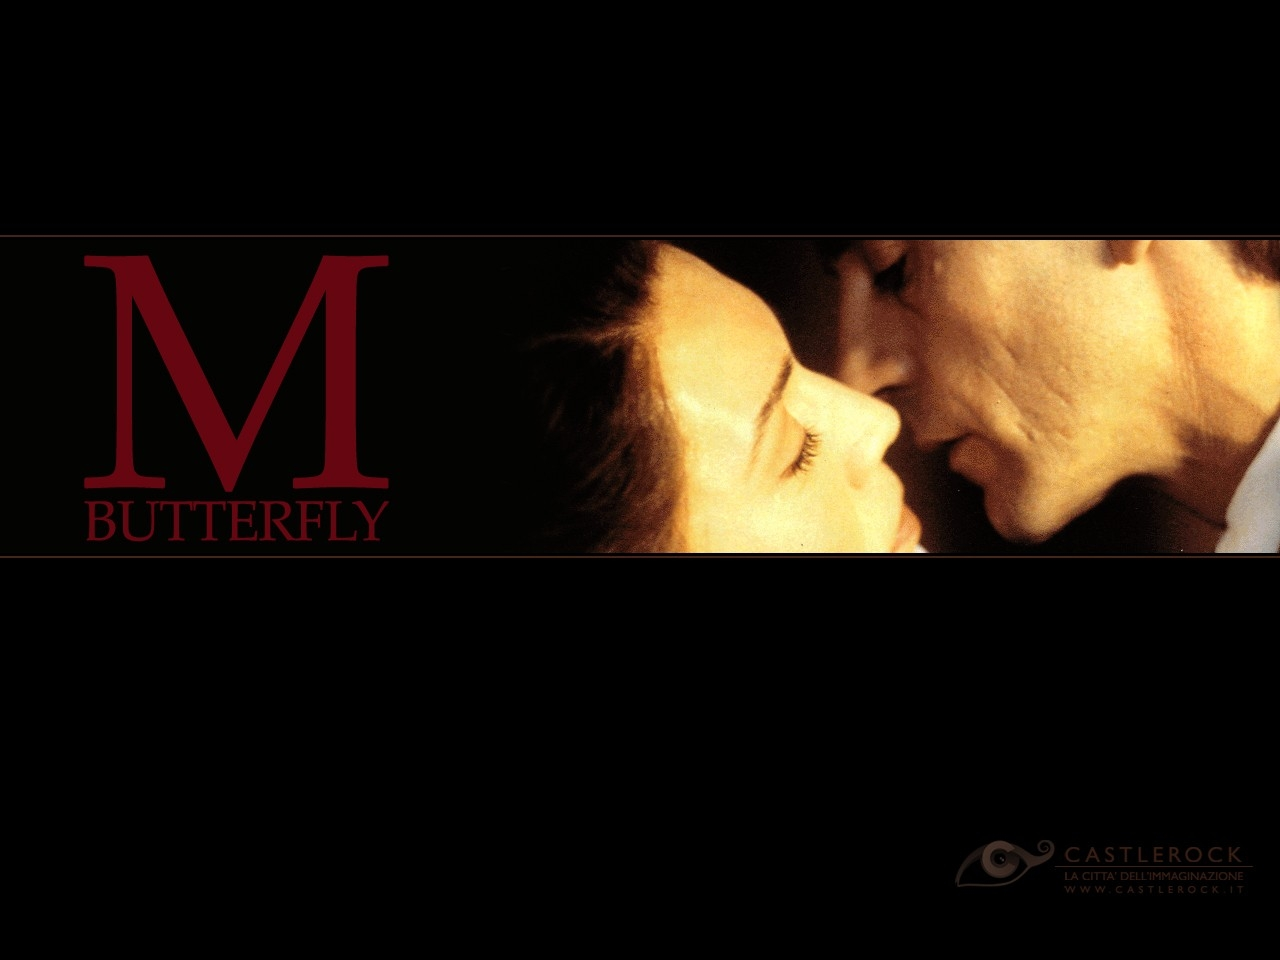 Wallpaper del film M. Butterfly